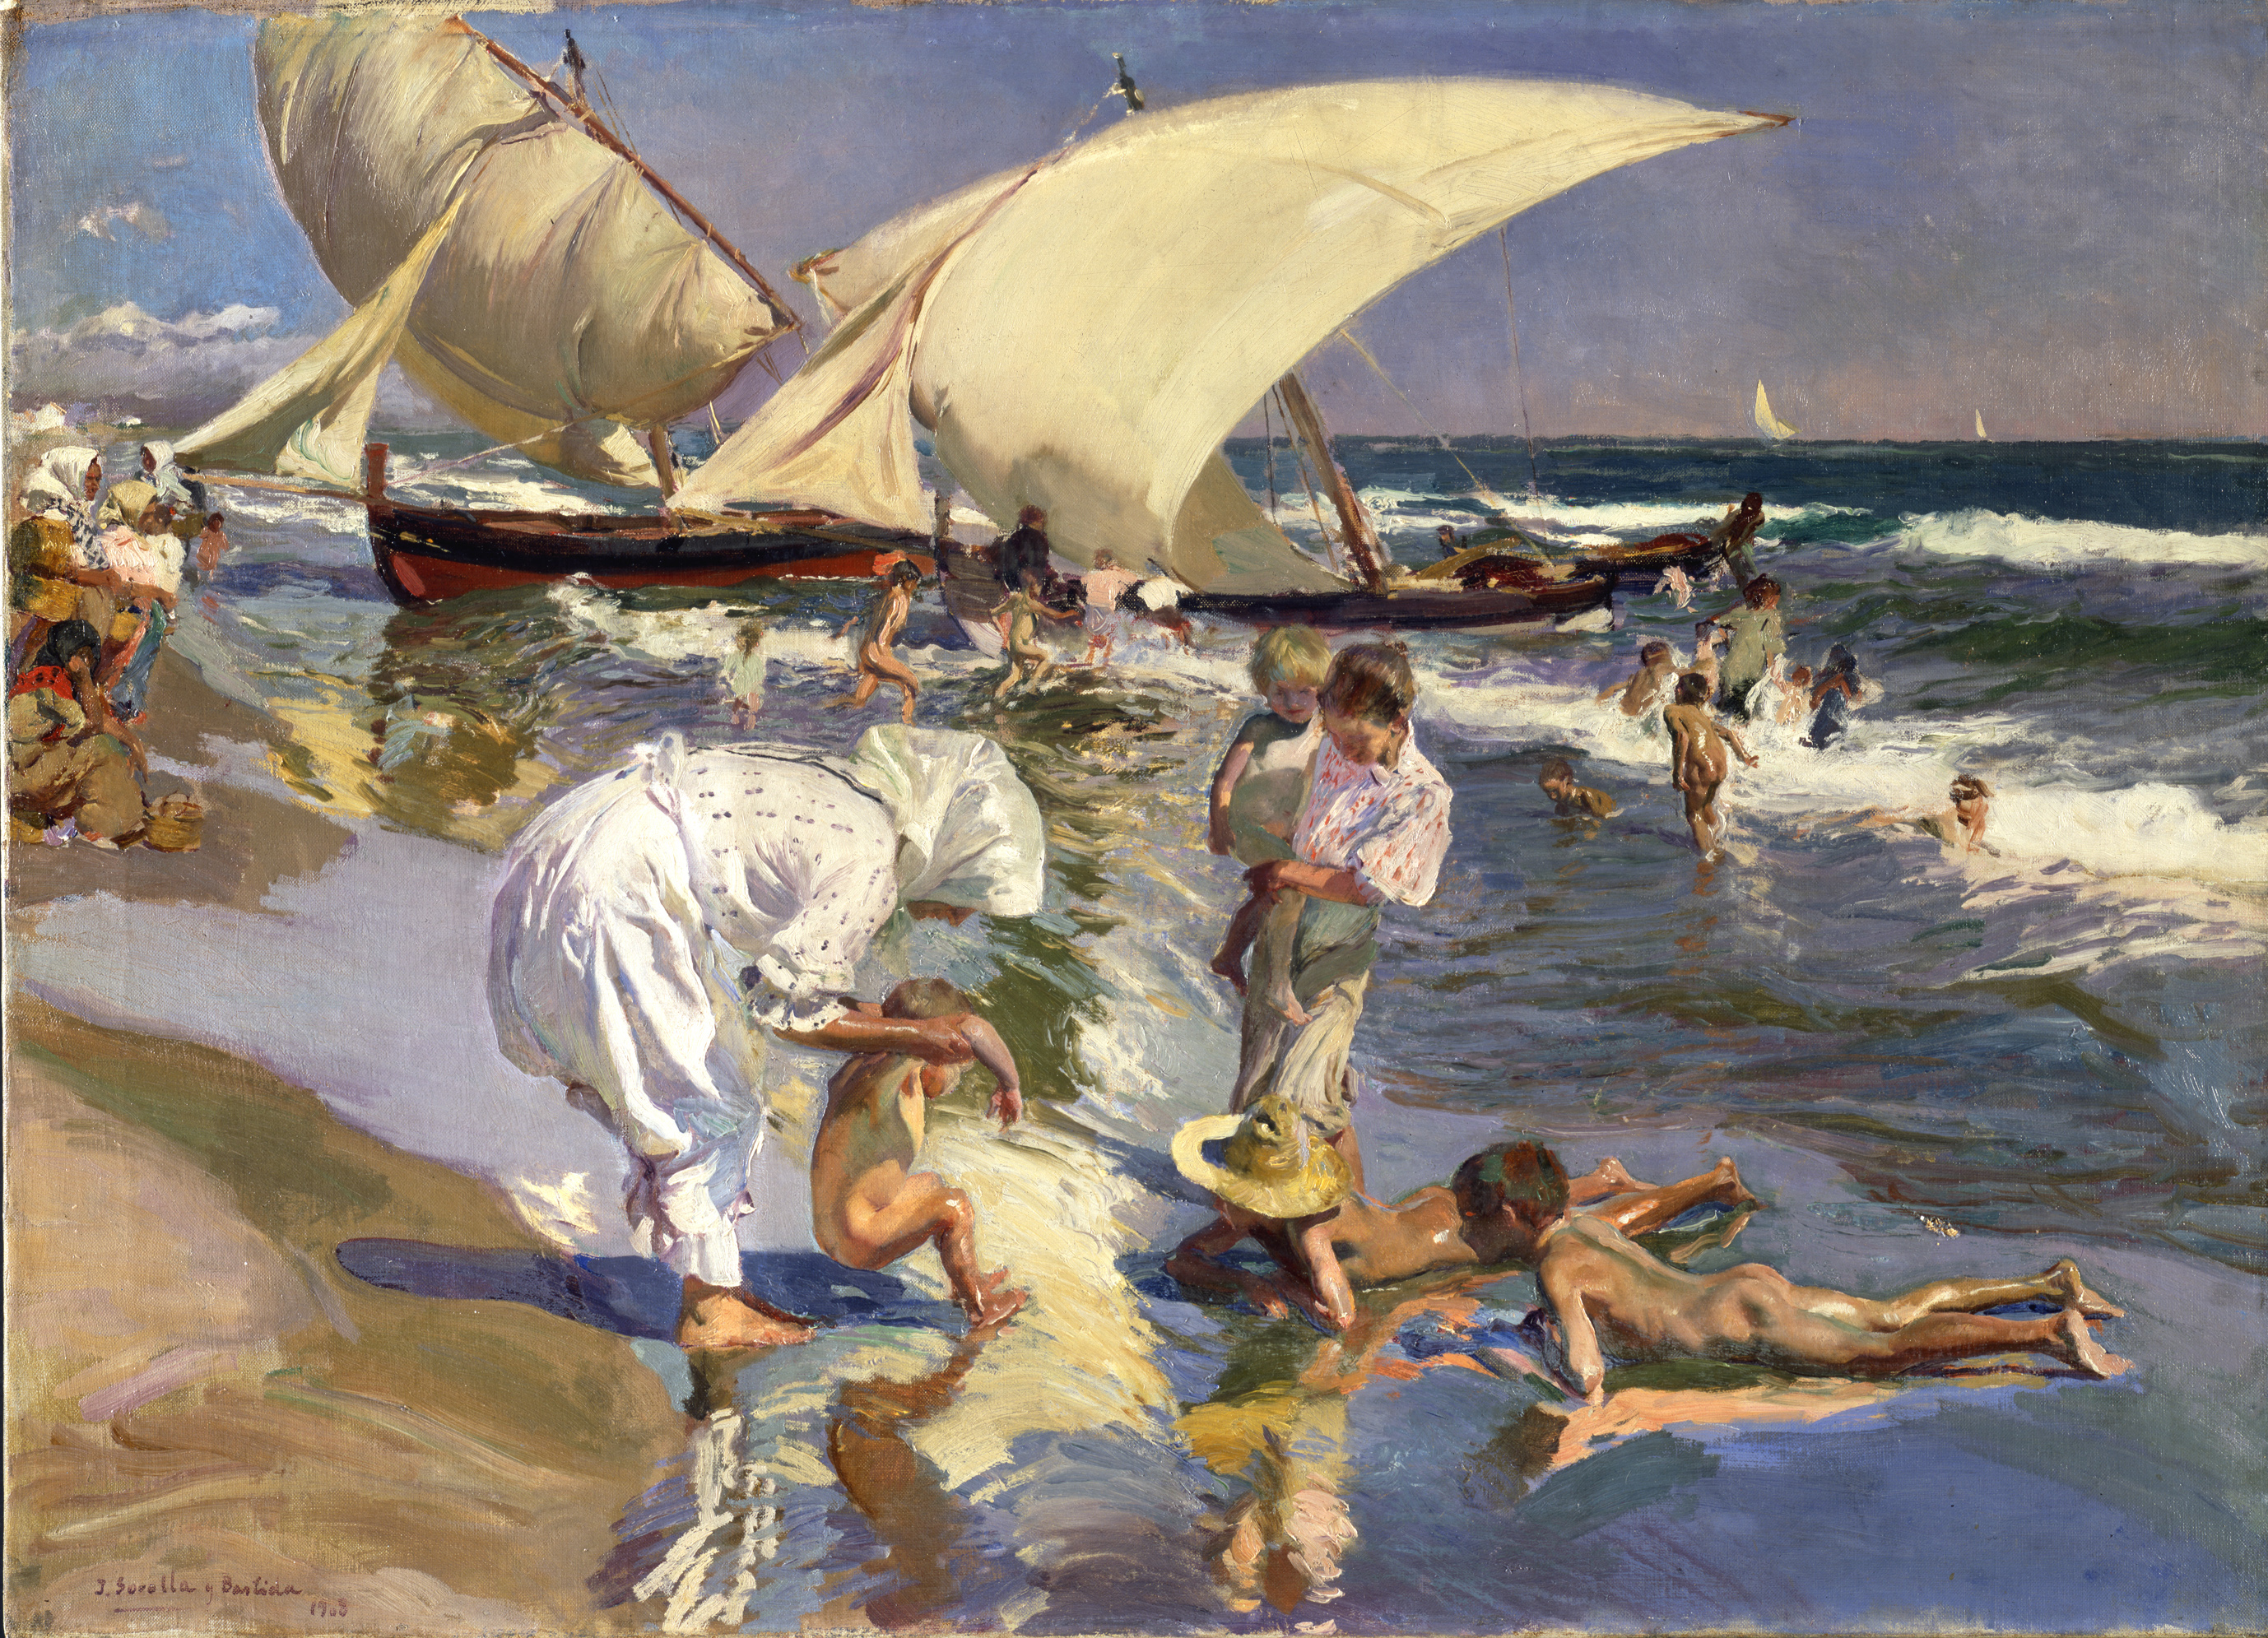 Valencia Beach - Joaquín Sorolla y Bastida (Spanish, 1863-1923), Valencia Beach: Morning Light, 1908, oil on canvas. The Hispanic Society of America, A2137